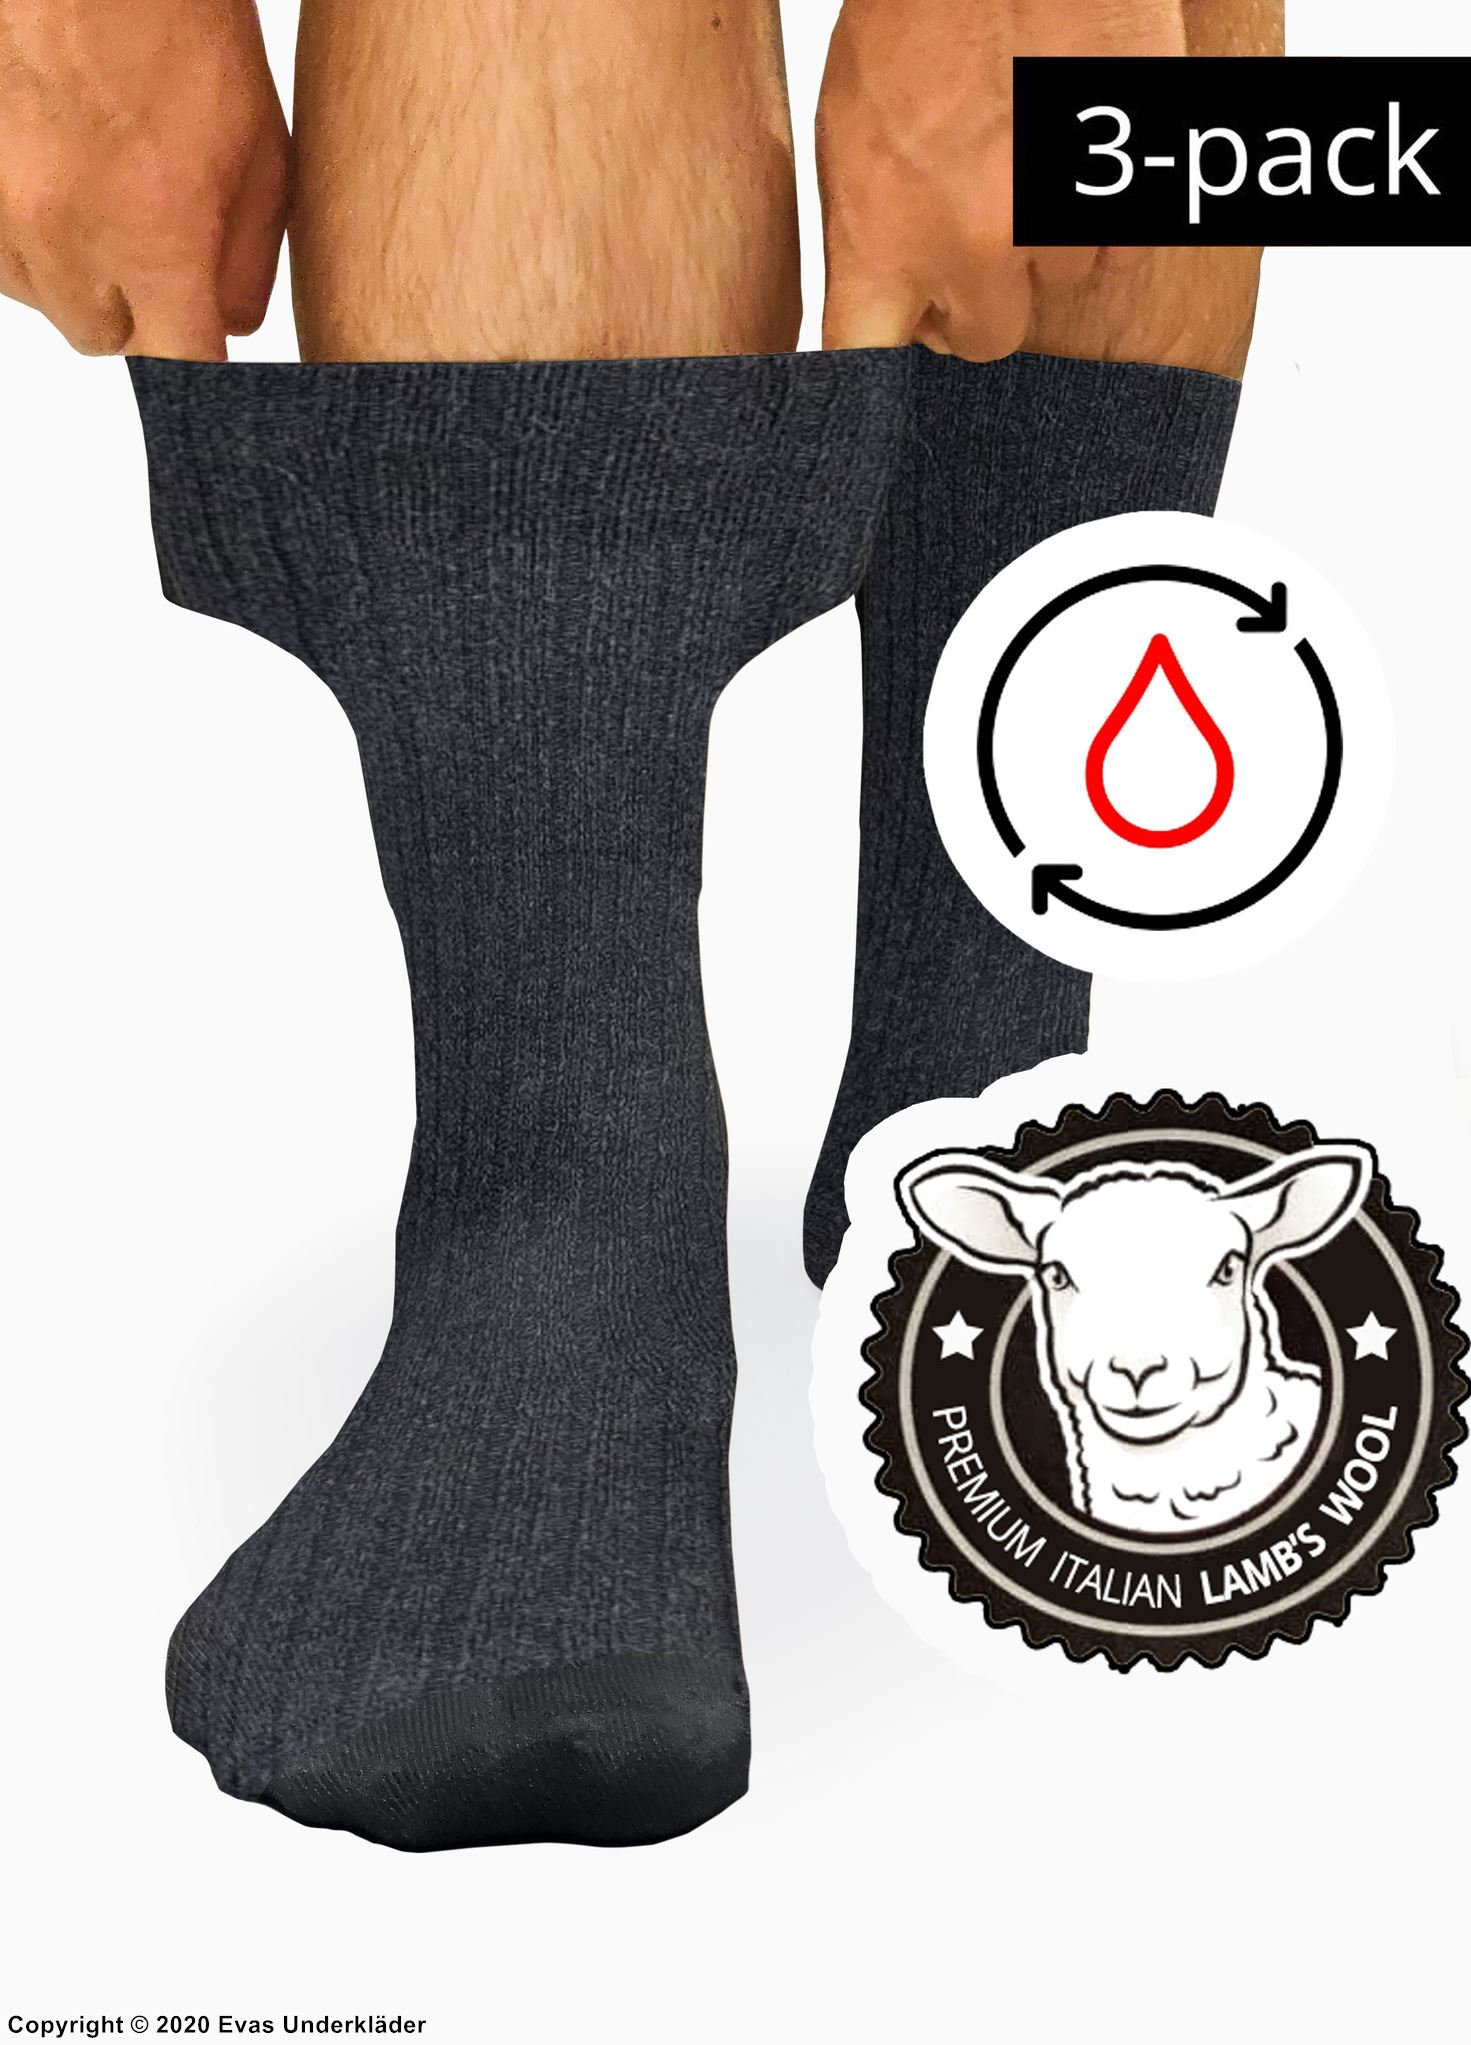 Warm comfort socks (unisex), Italian lamb's wool, gentle elastic band, very high quality, 3-pack